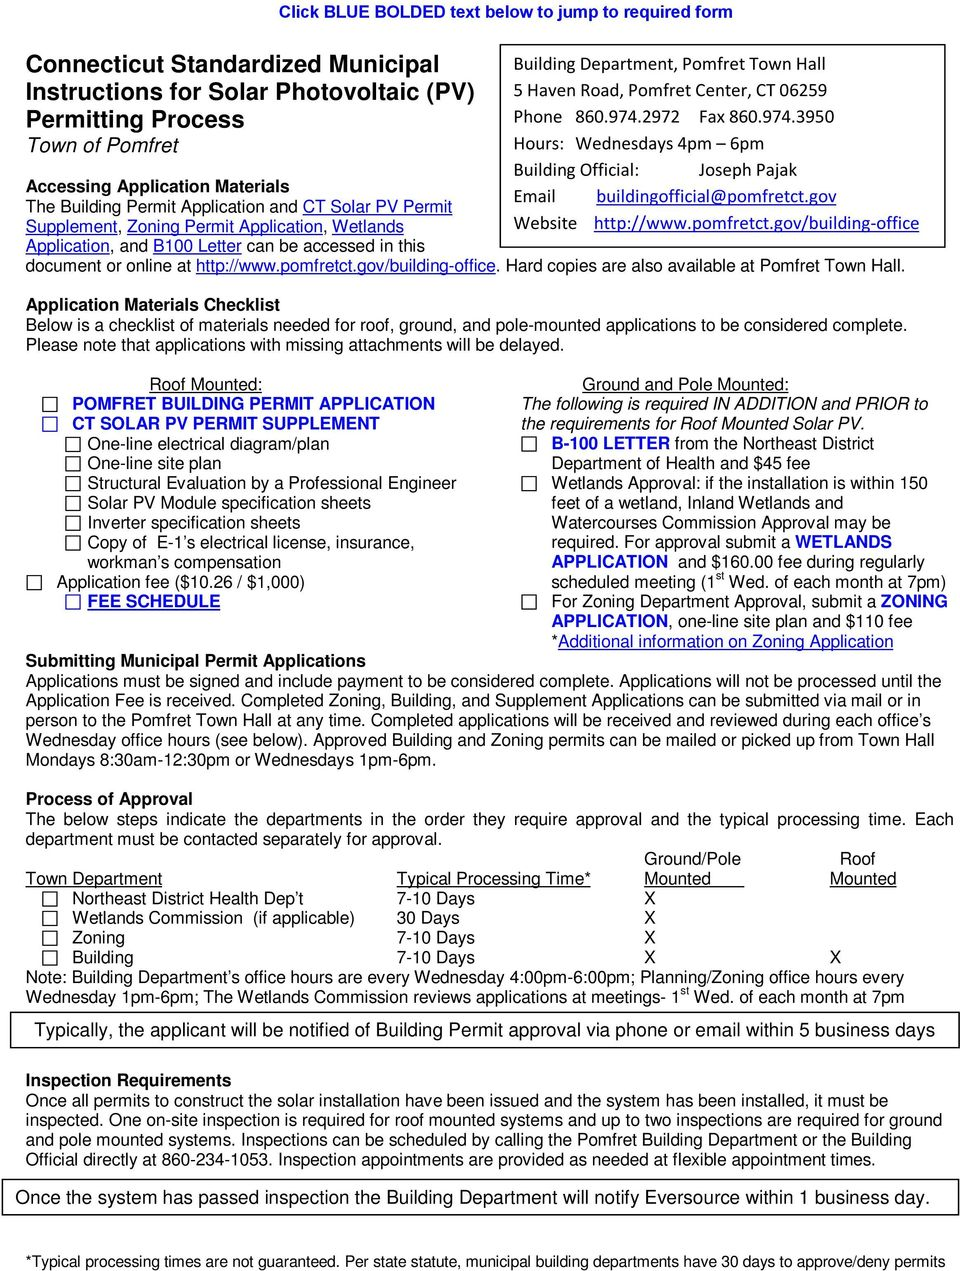 gov/building-office Application, and B100 Letter can be accessed in this document or online at http://www.pomfretct.gov/building-office. Hard copies are also available at Pomfret Town Hall.